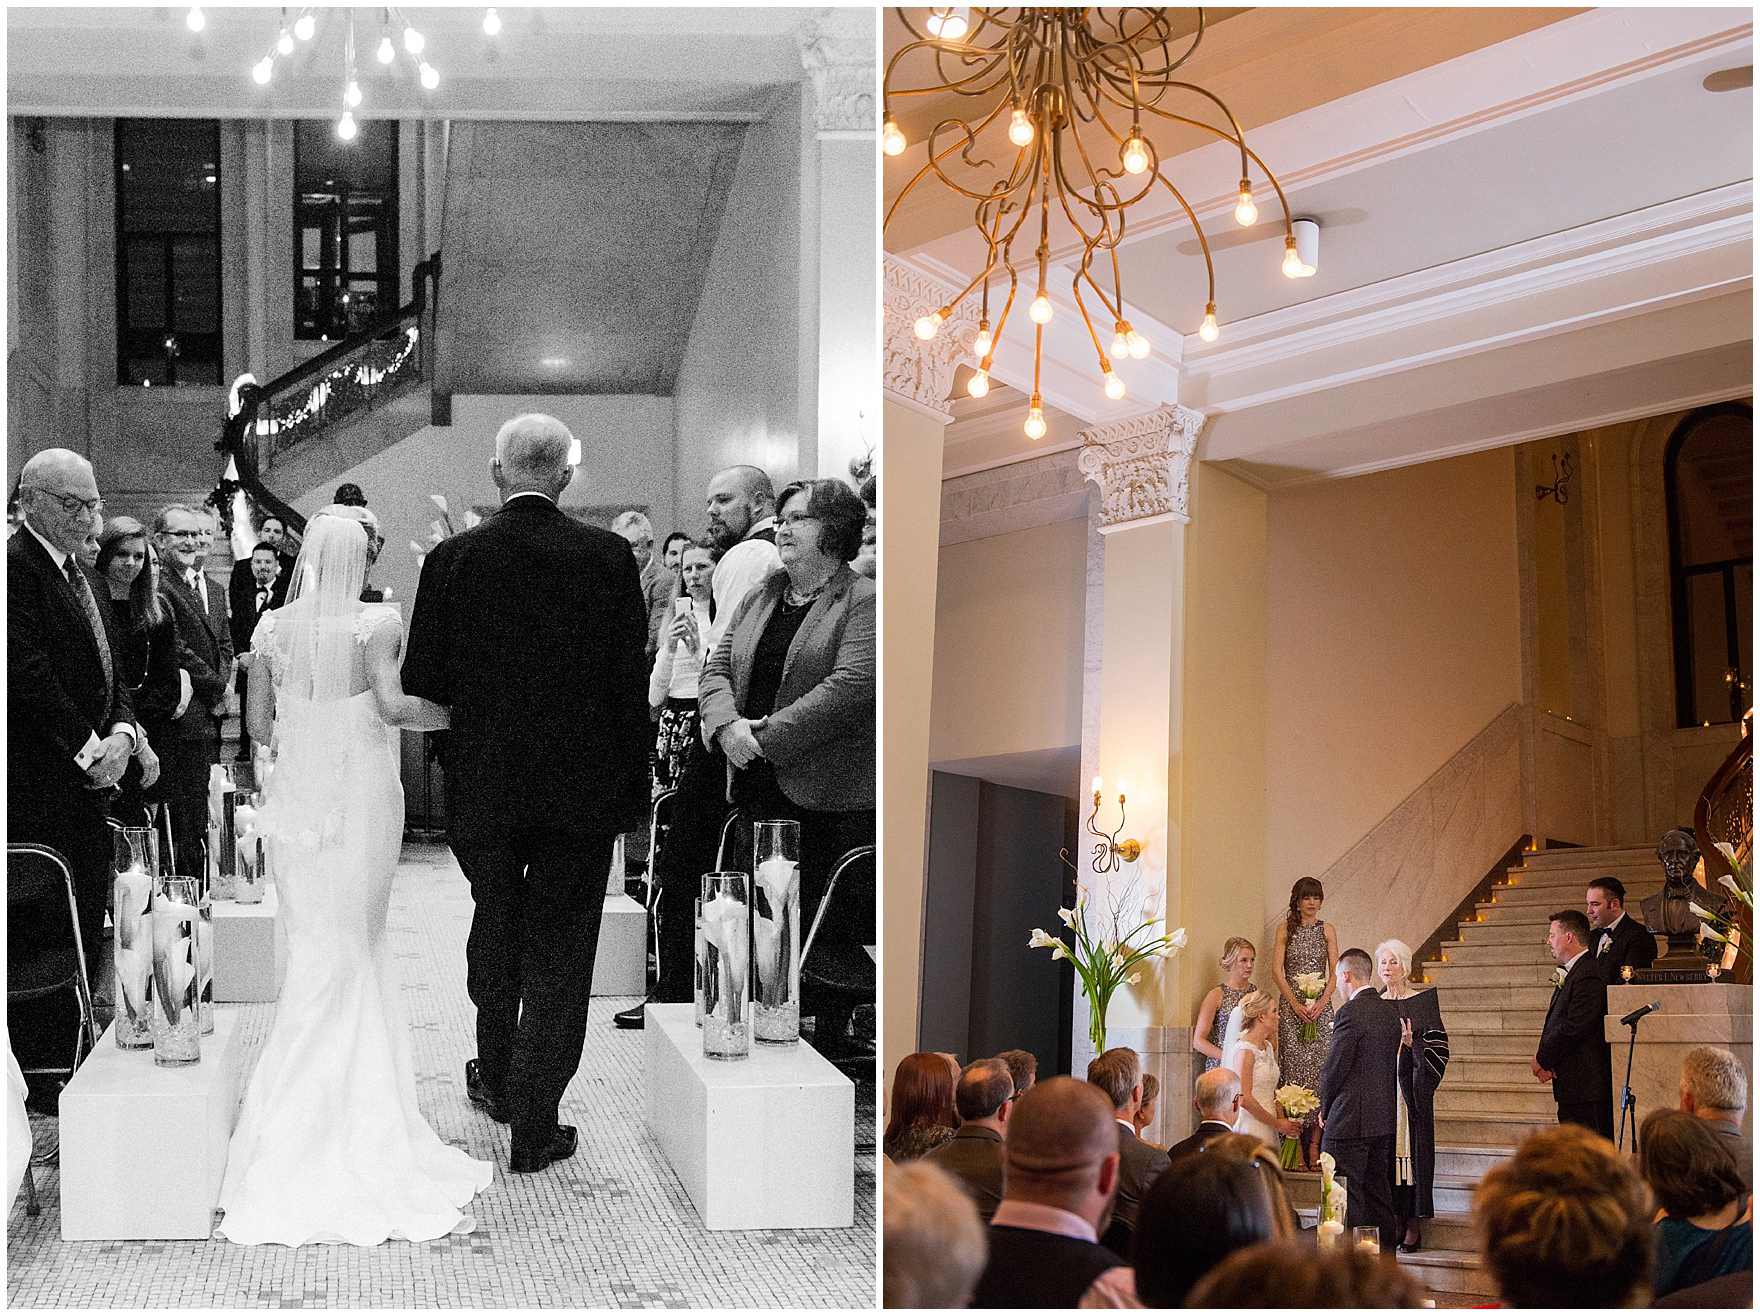 The bride and her father walk down the aisle during a Newberry Library Chicago wedding.